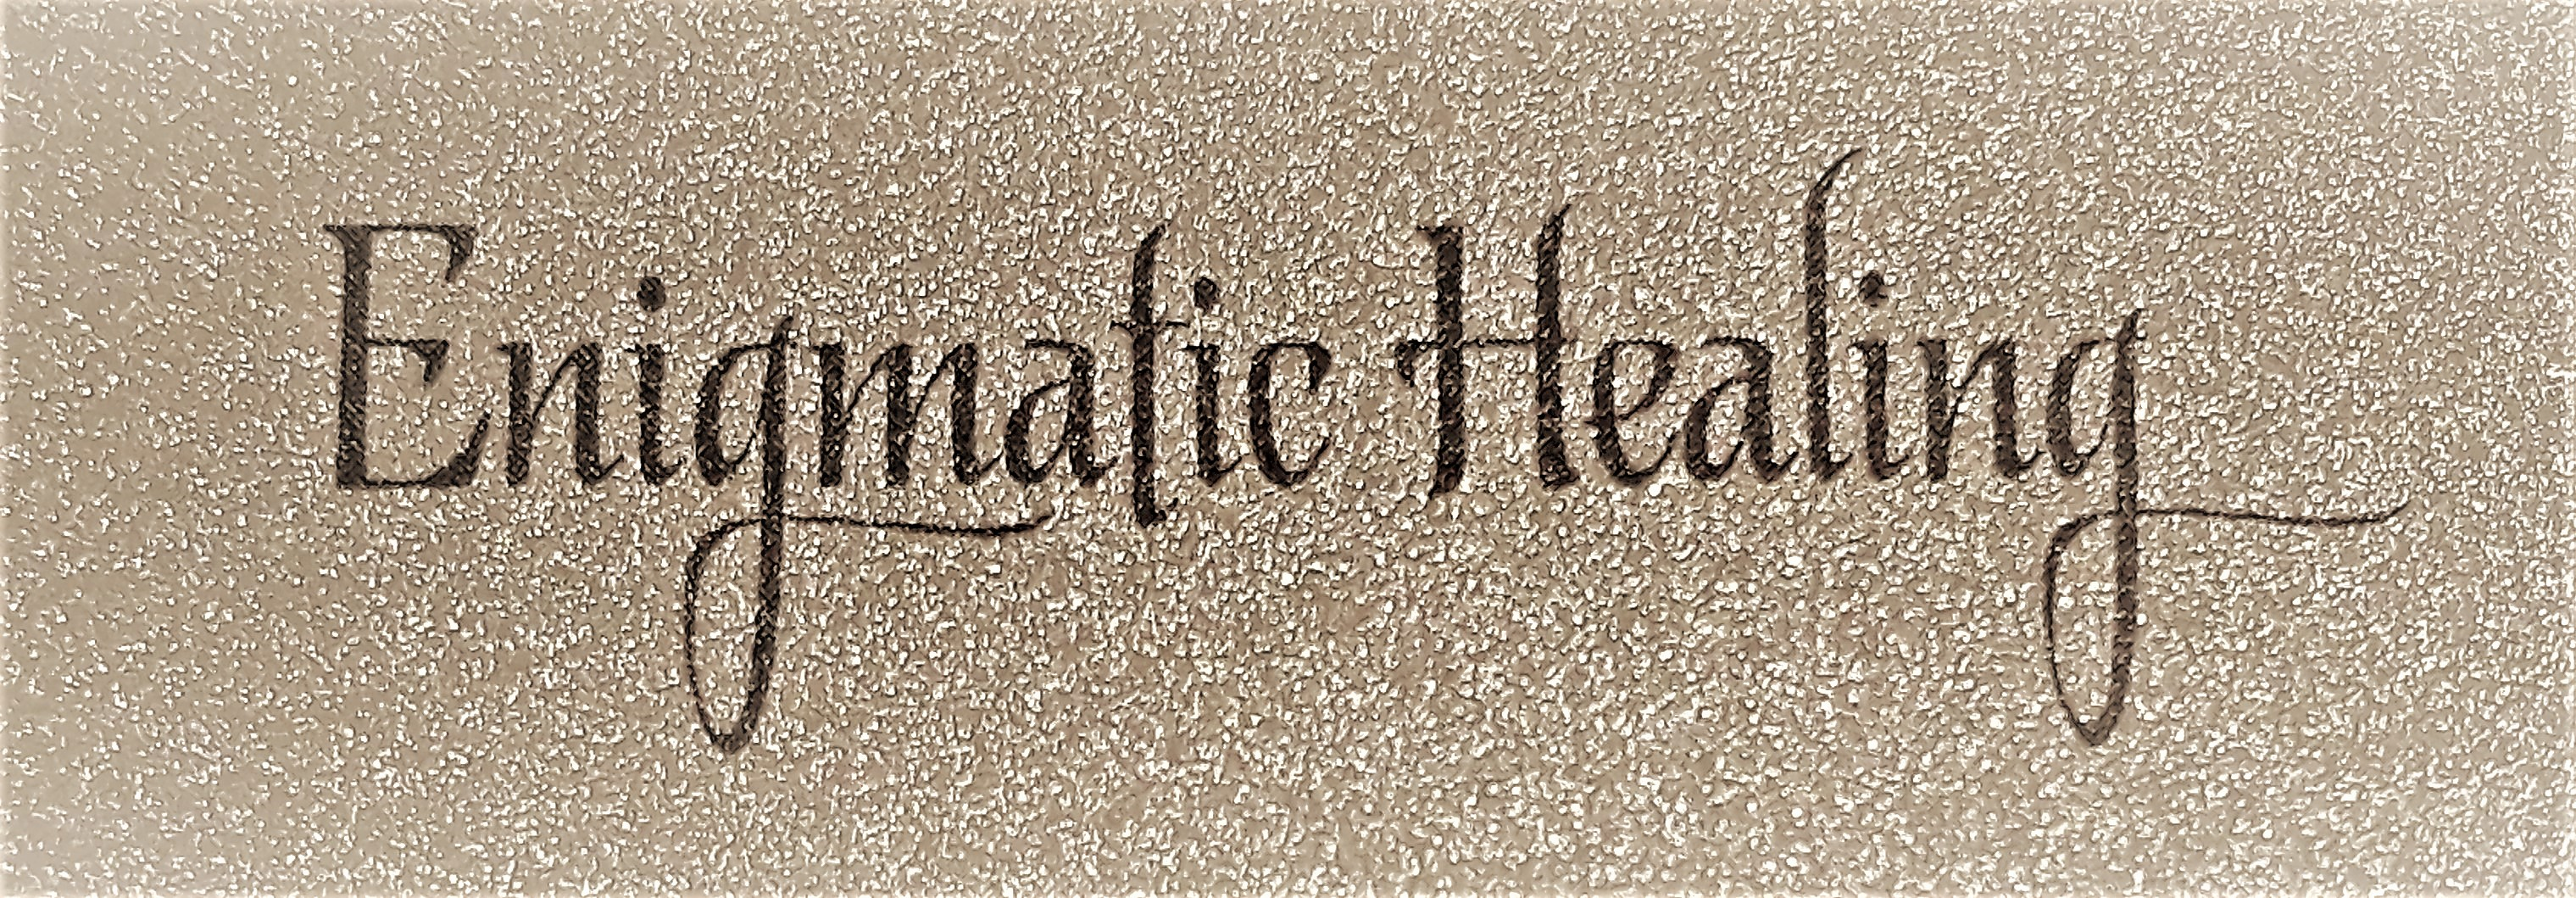 Enigmatic Healing